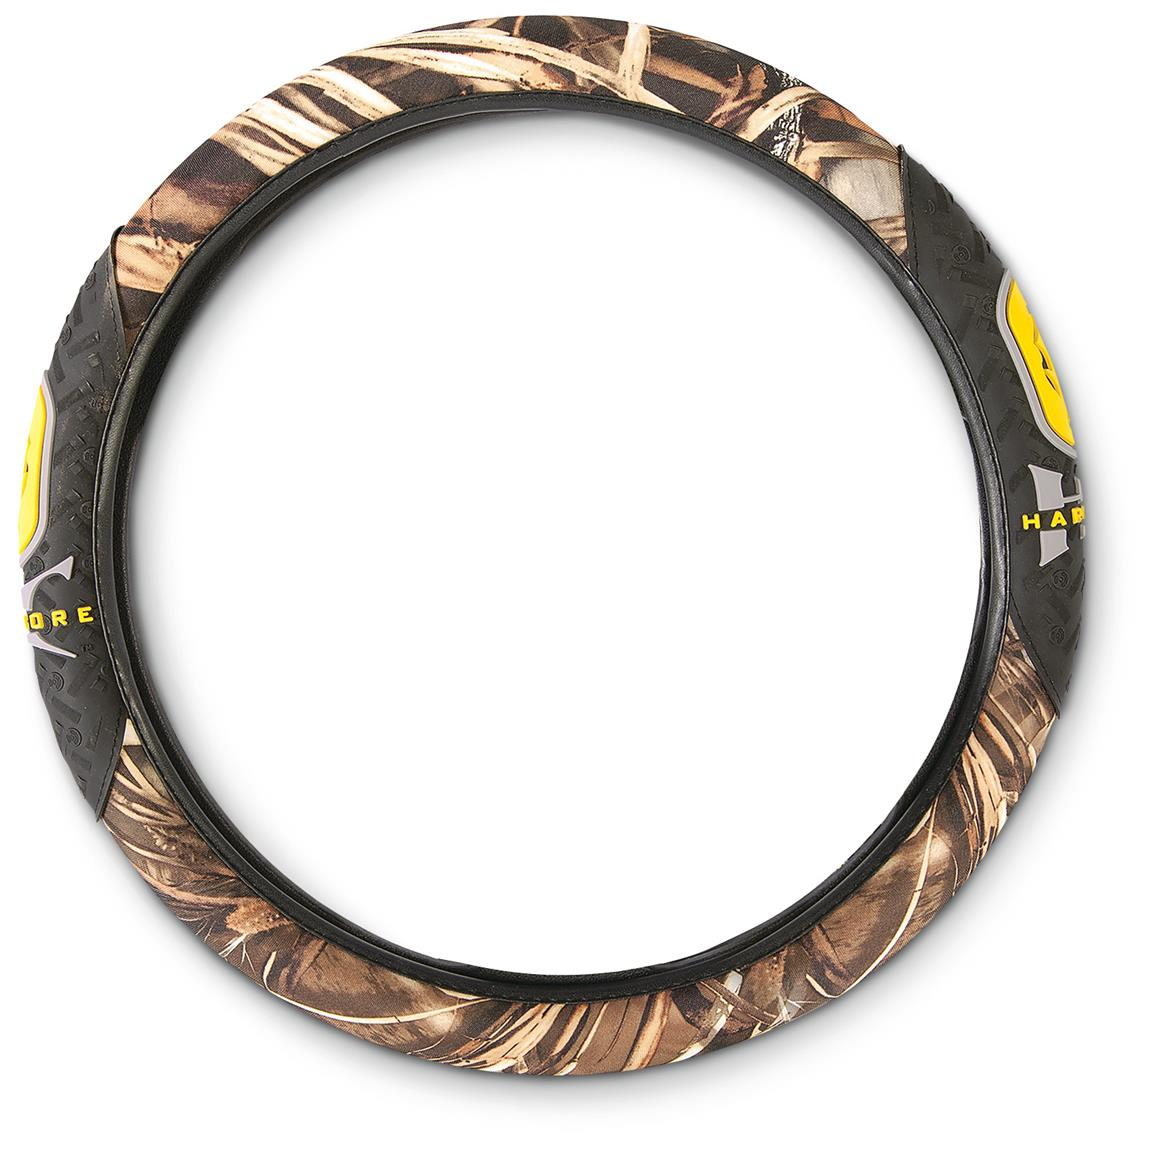 2-grip Universal Camo Steering Wheel Cover, Hardcore